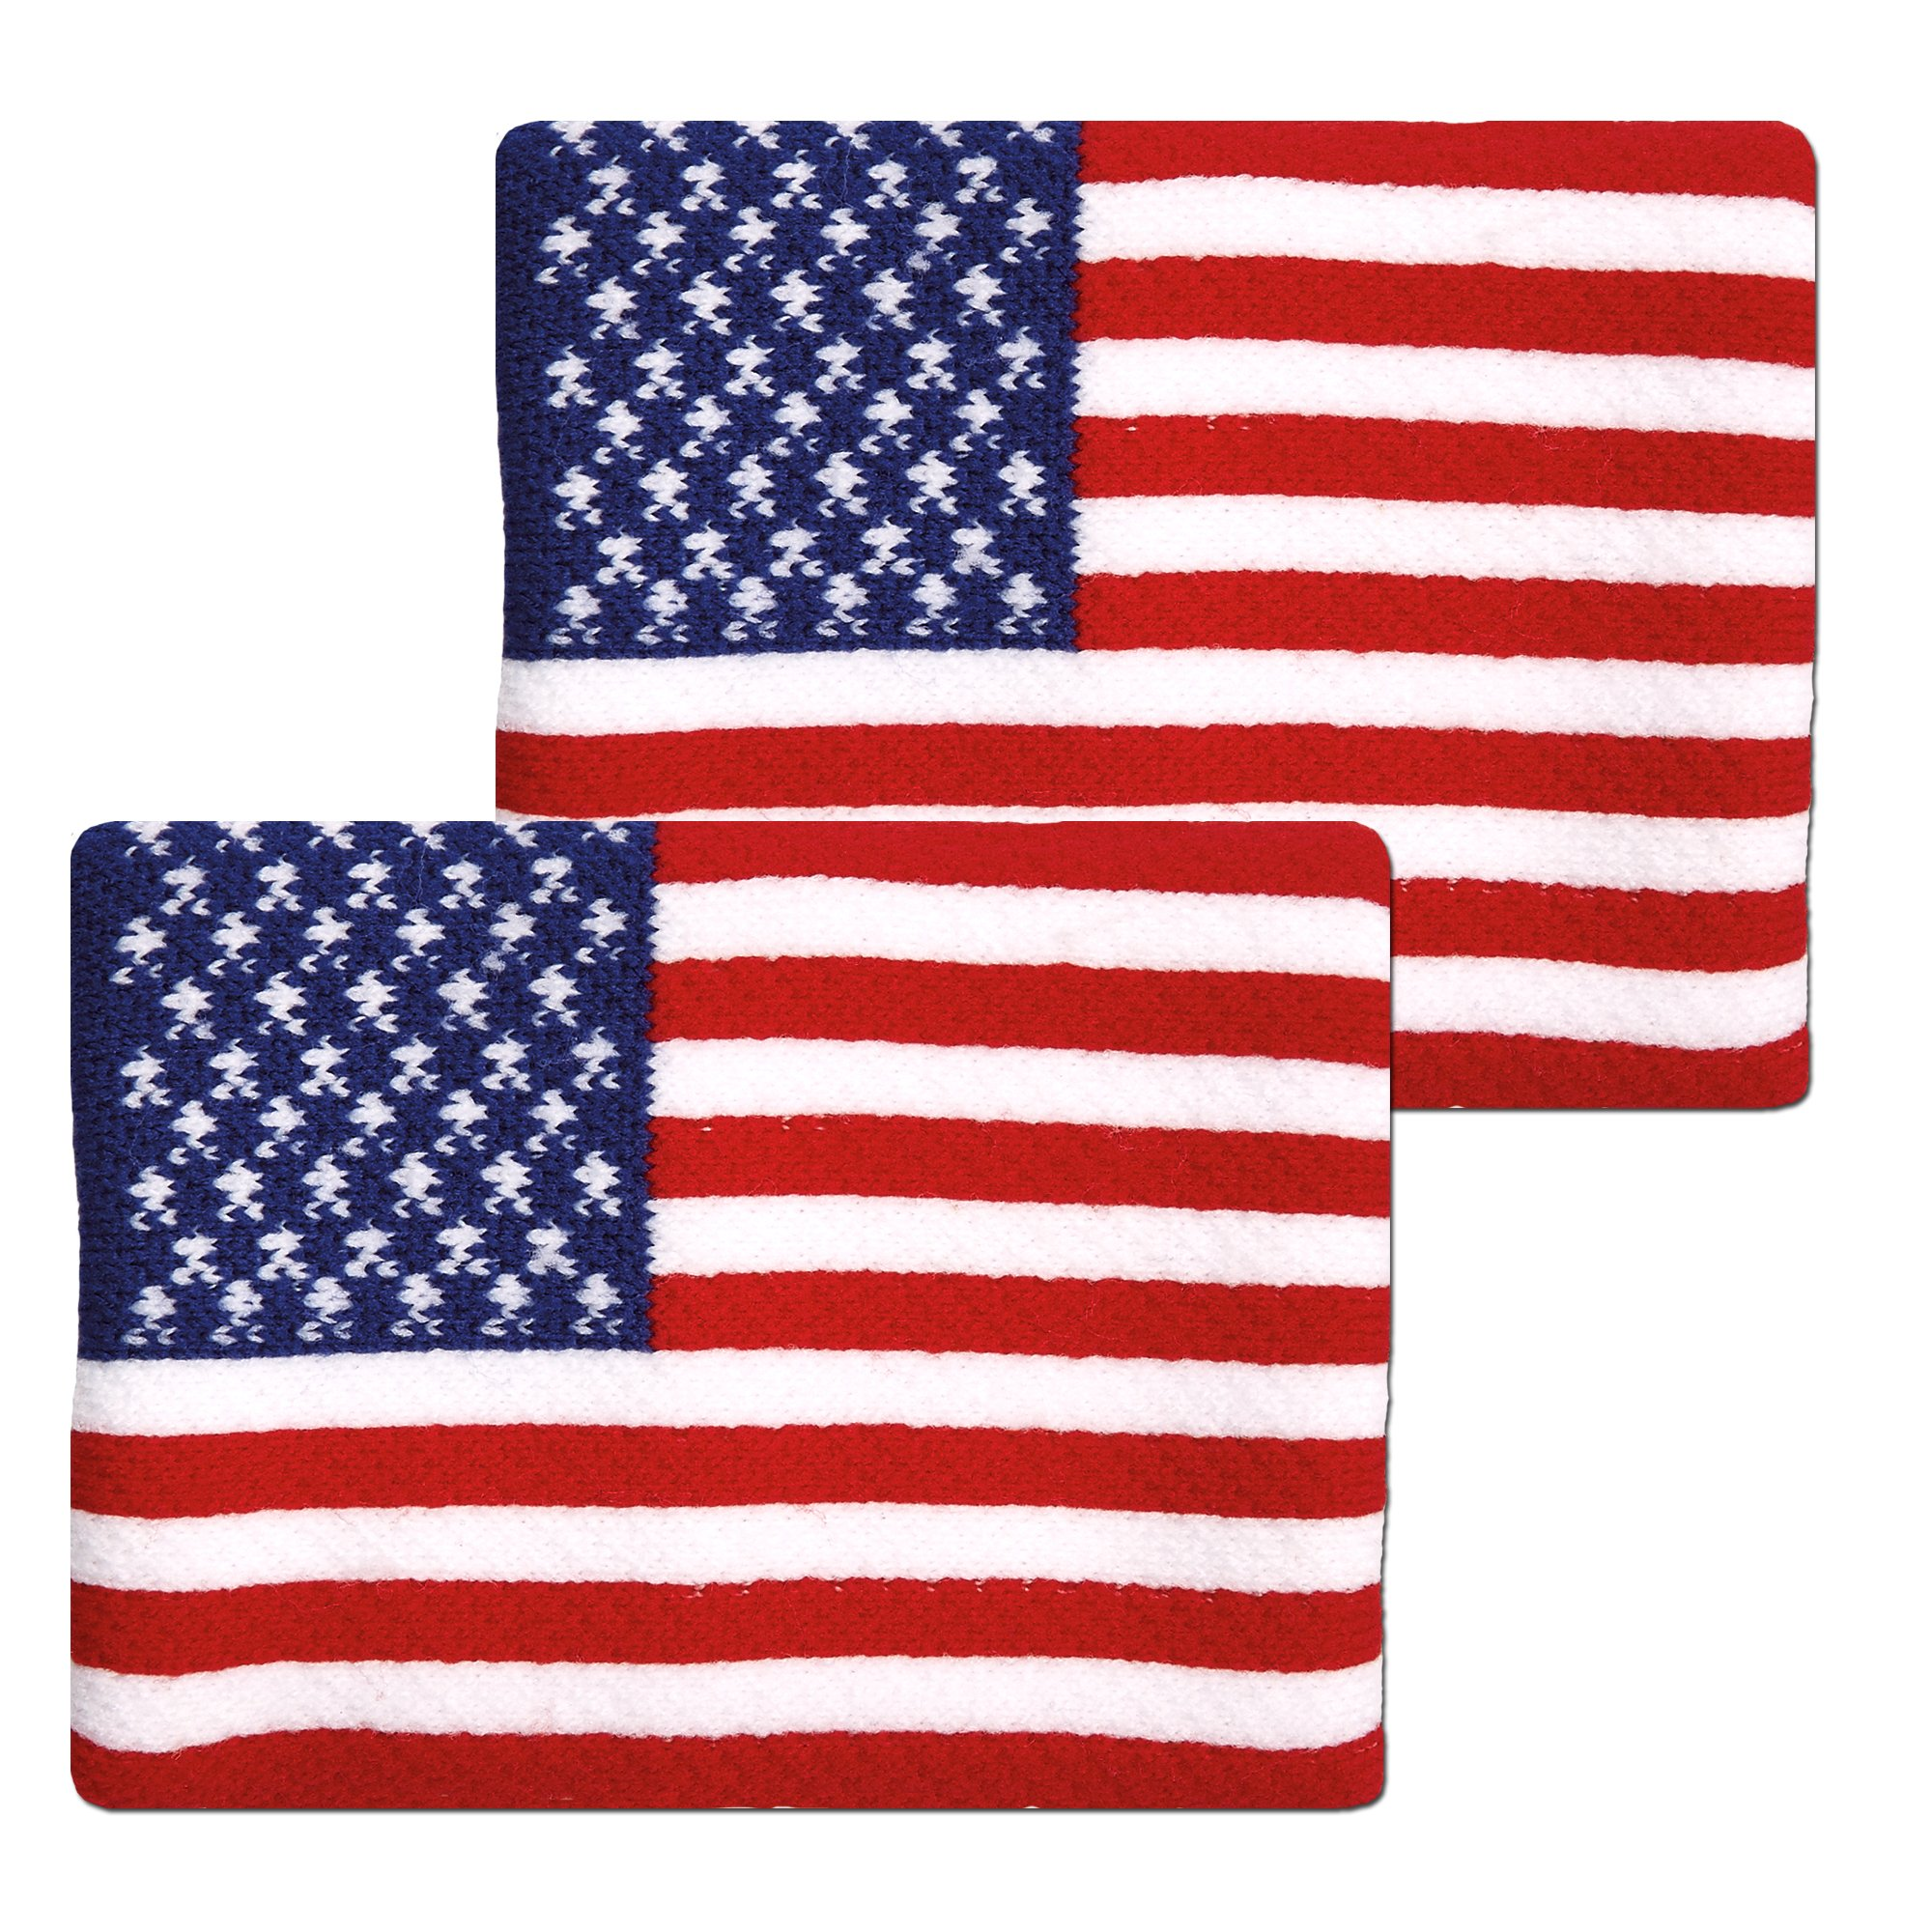 Unique Sports Flag Wristbands, American Flag sweatbands, USA